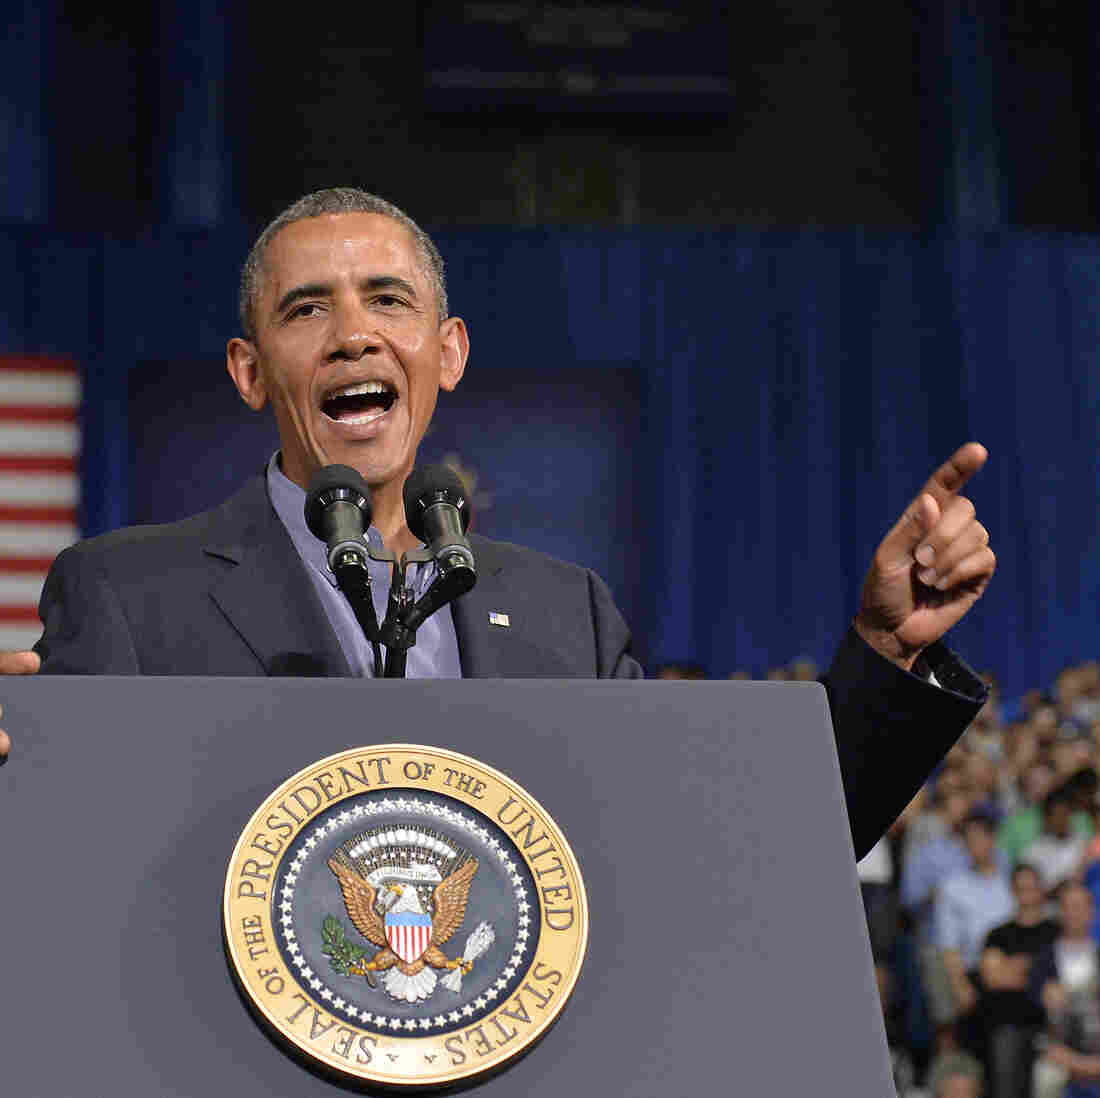 President Obama speaks on education at University at Buffalo, State University of New York, on Thursday.